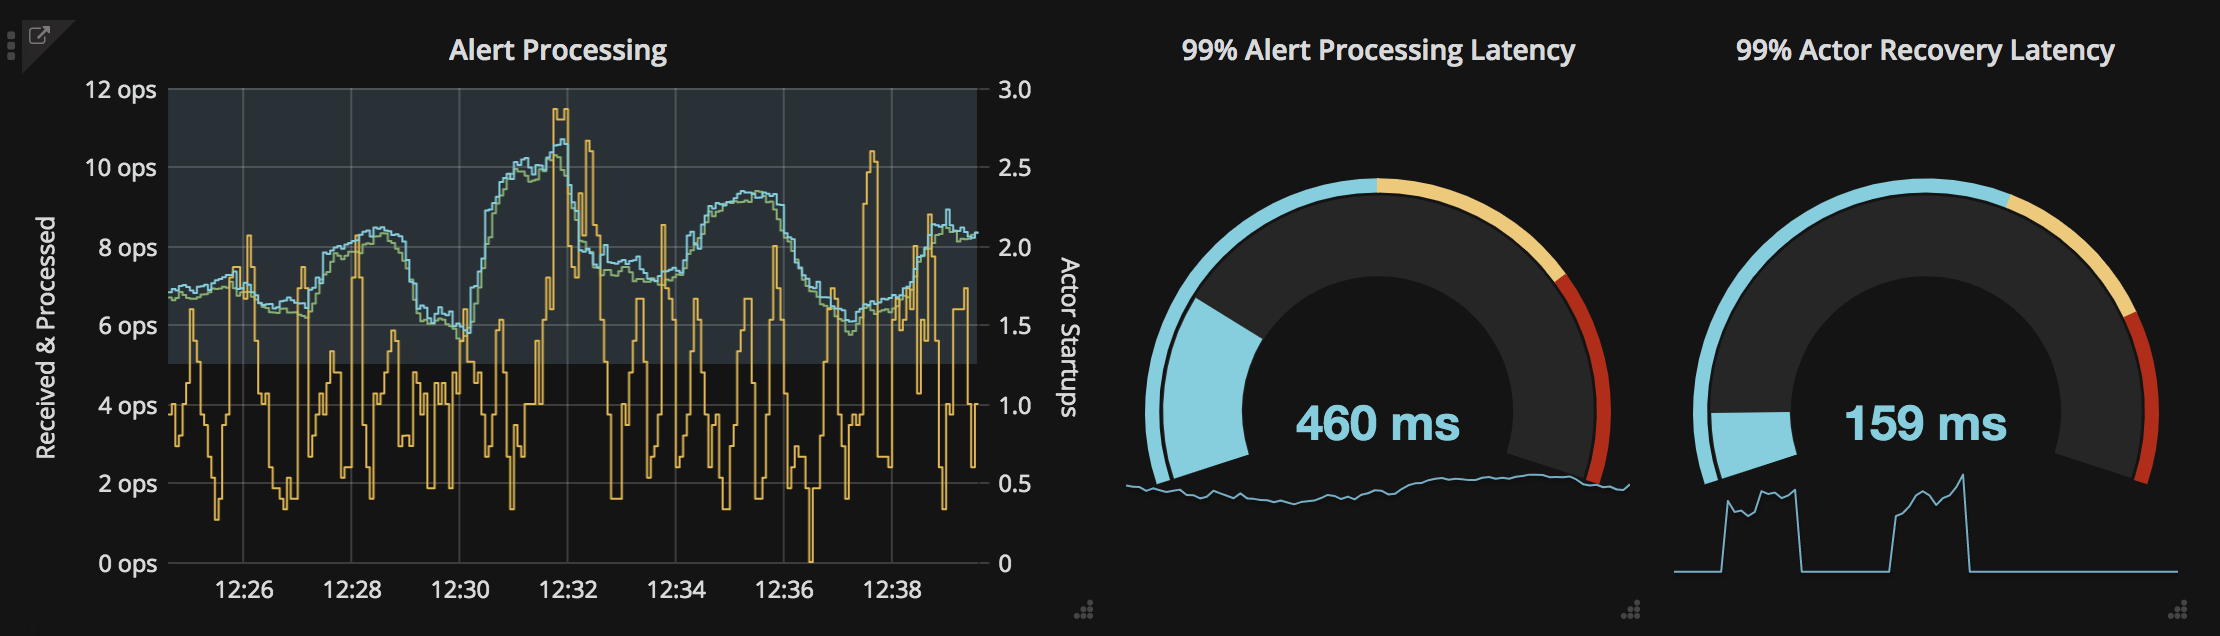 grafana example image annotation